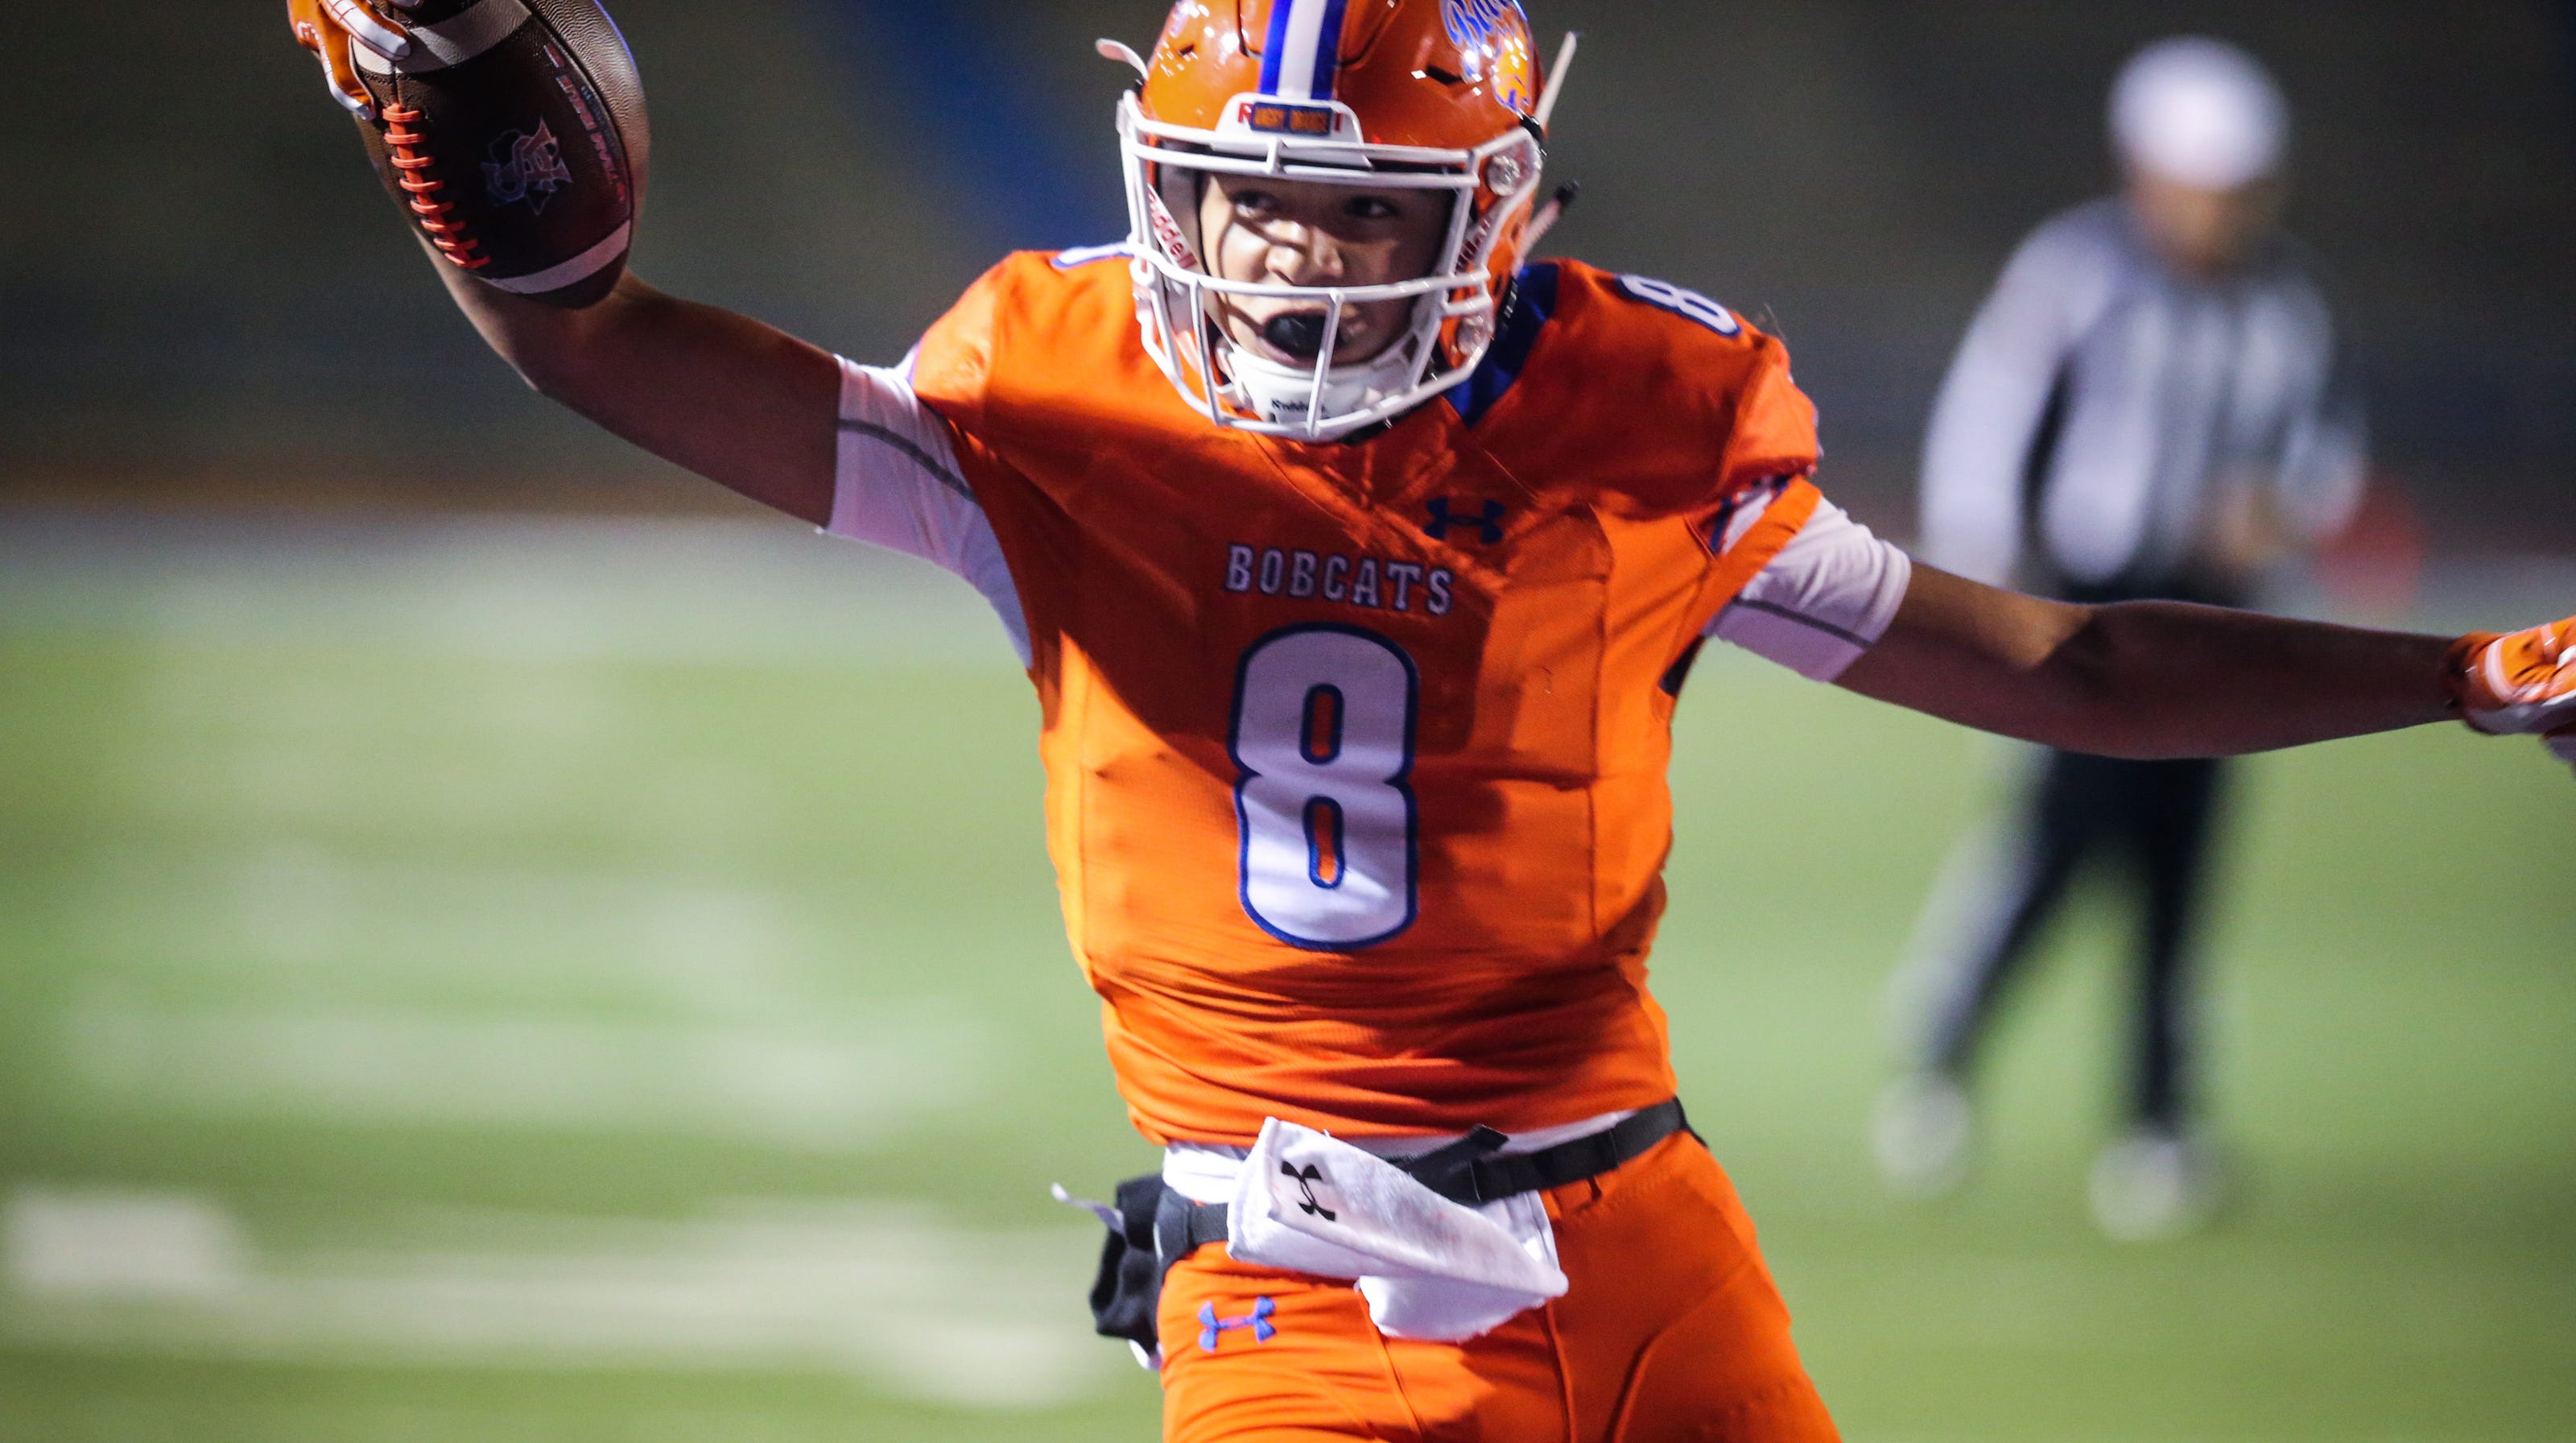 San Angelo Central S Updated 2020 Football Schedule Has New Opponents